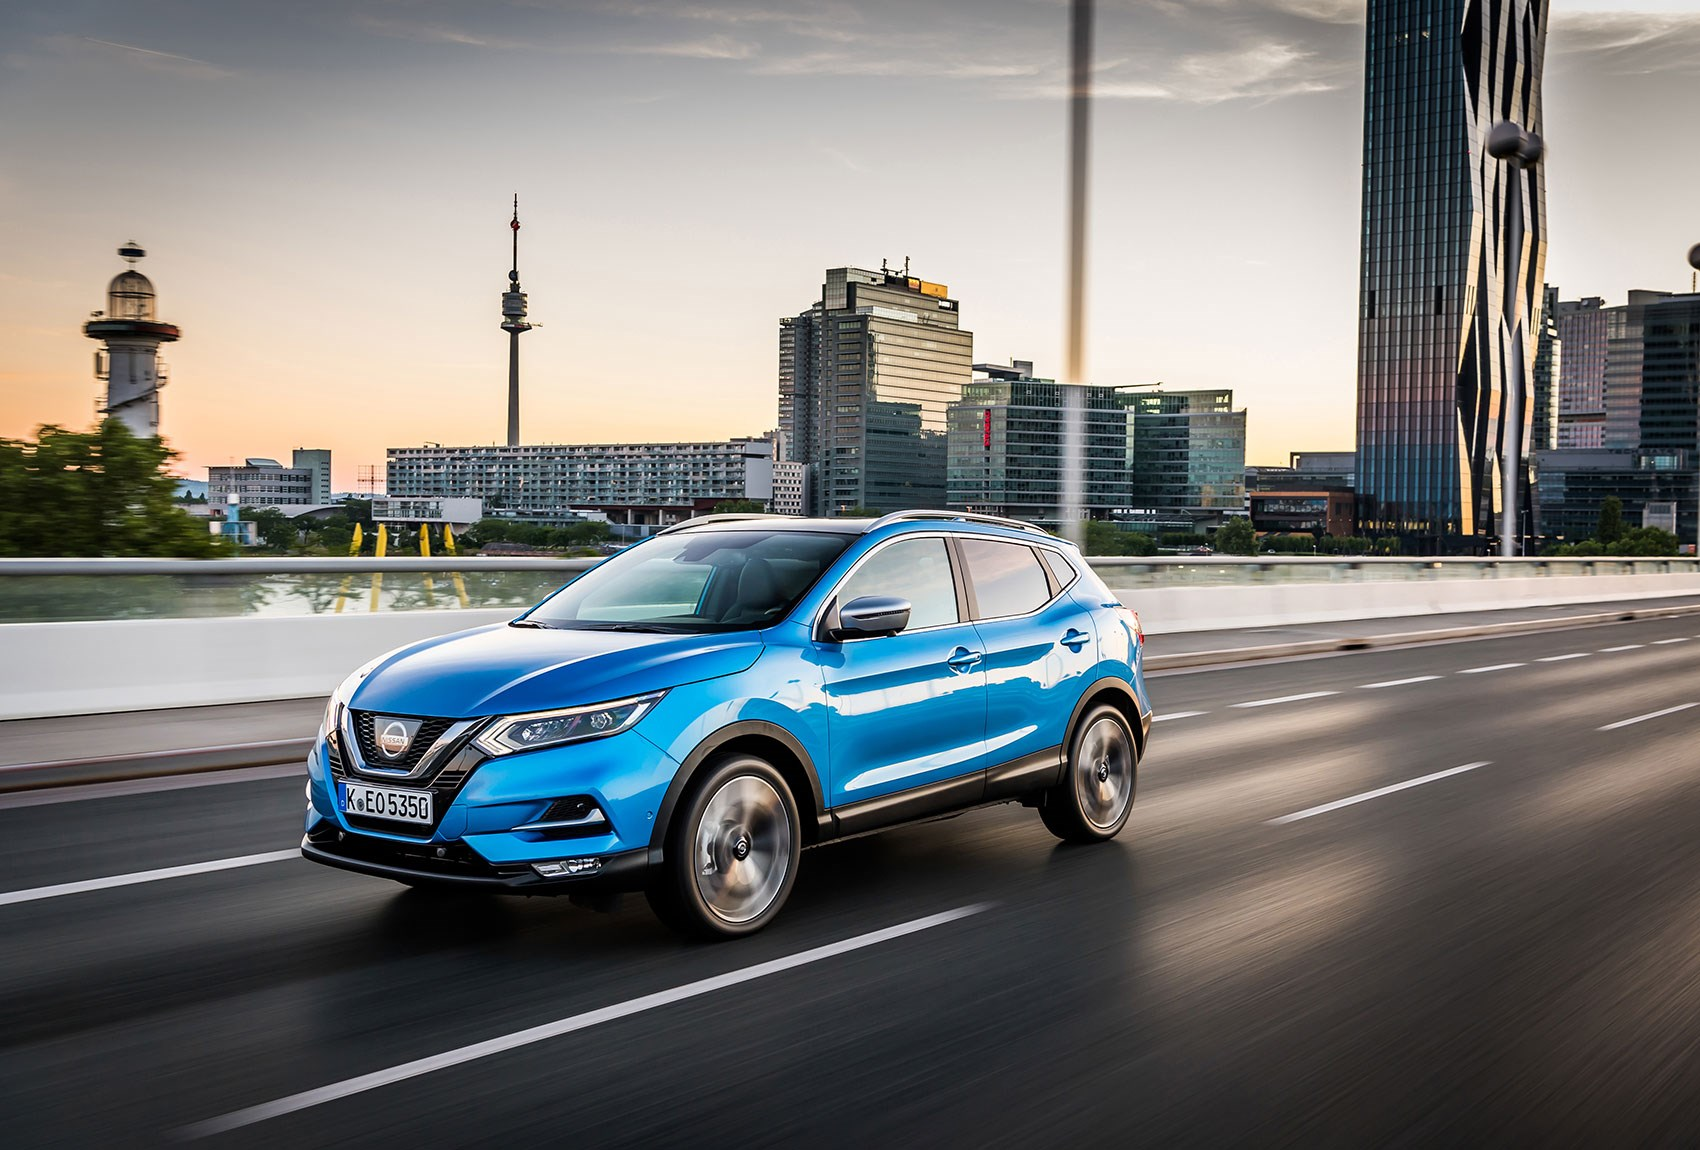 Nissan Qashqai: for sale in our classifieds - and don't miss our Qashqai review